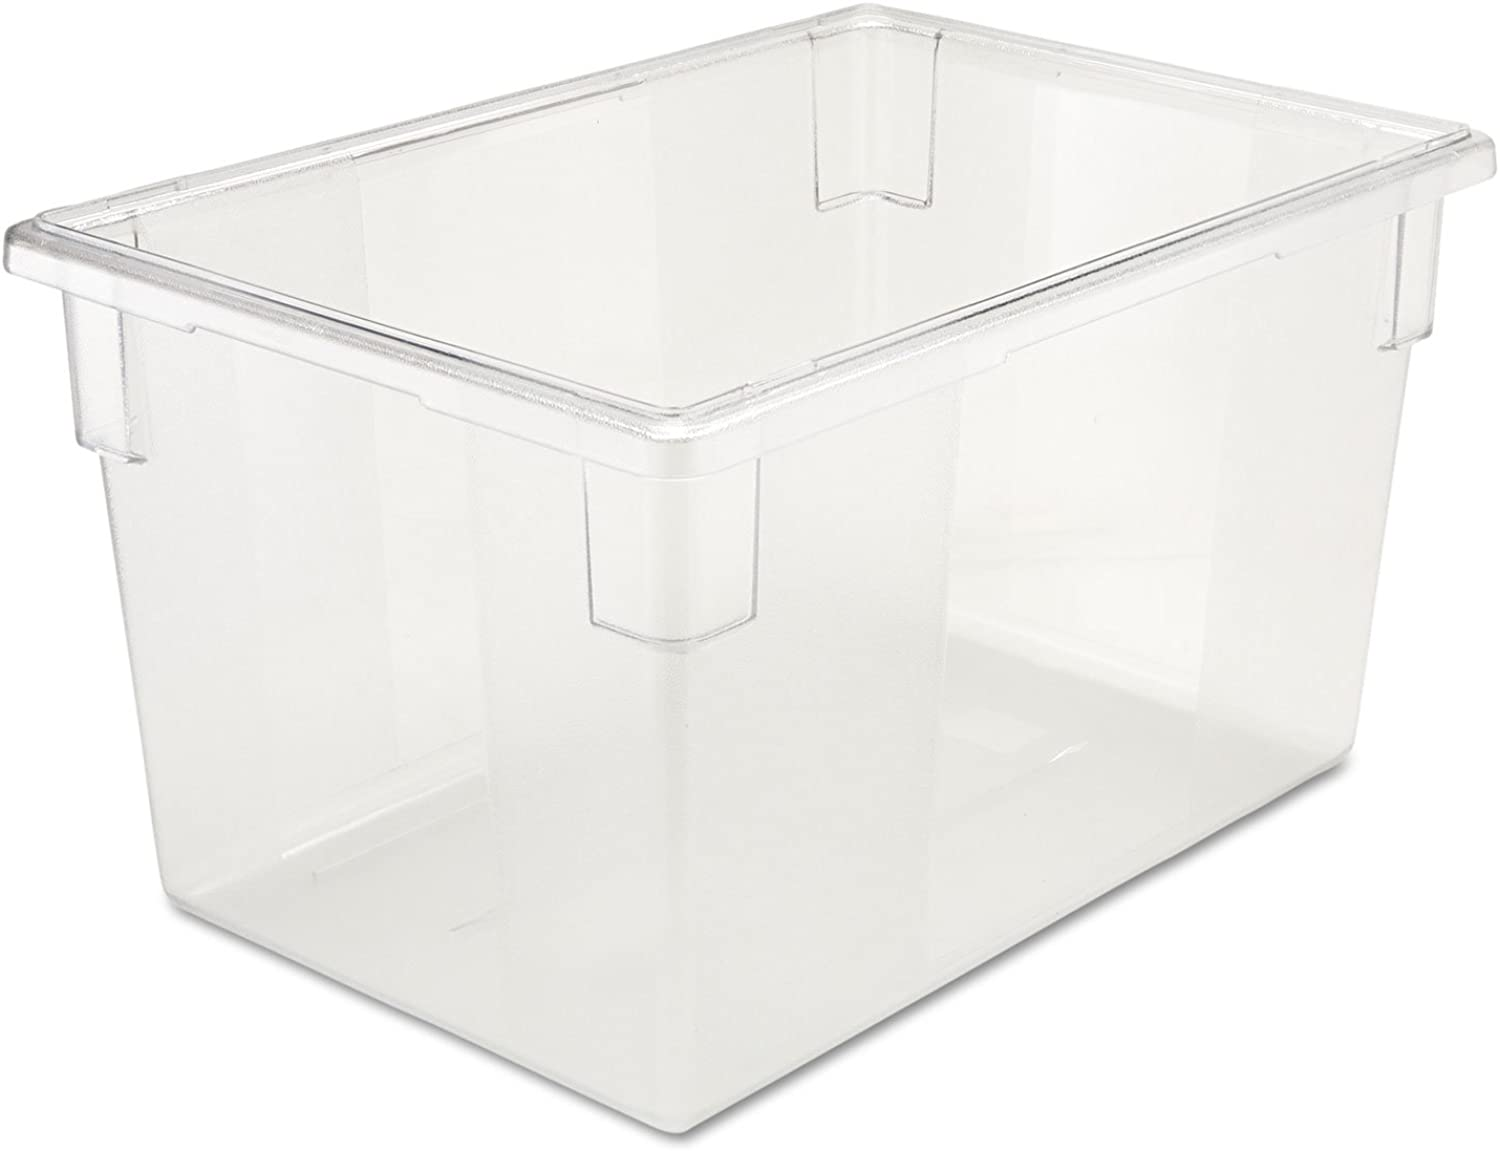 Rubbermaid Commercial Food/Tote Boxes, 21 1/2gal, 26w x 18d x 15h, Clear